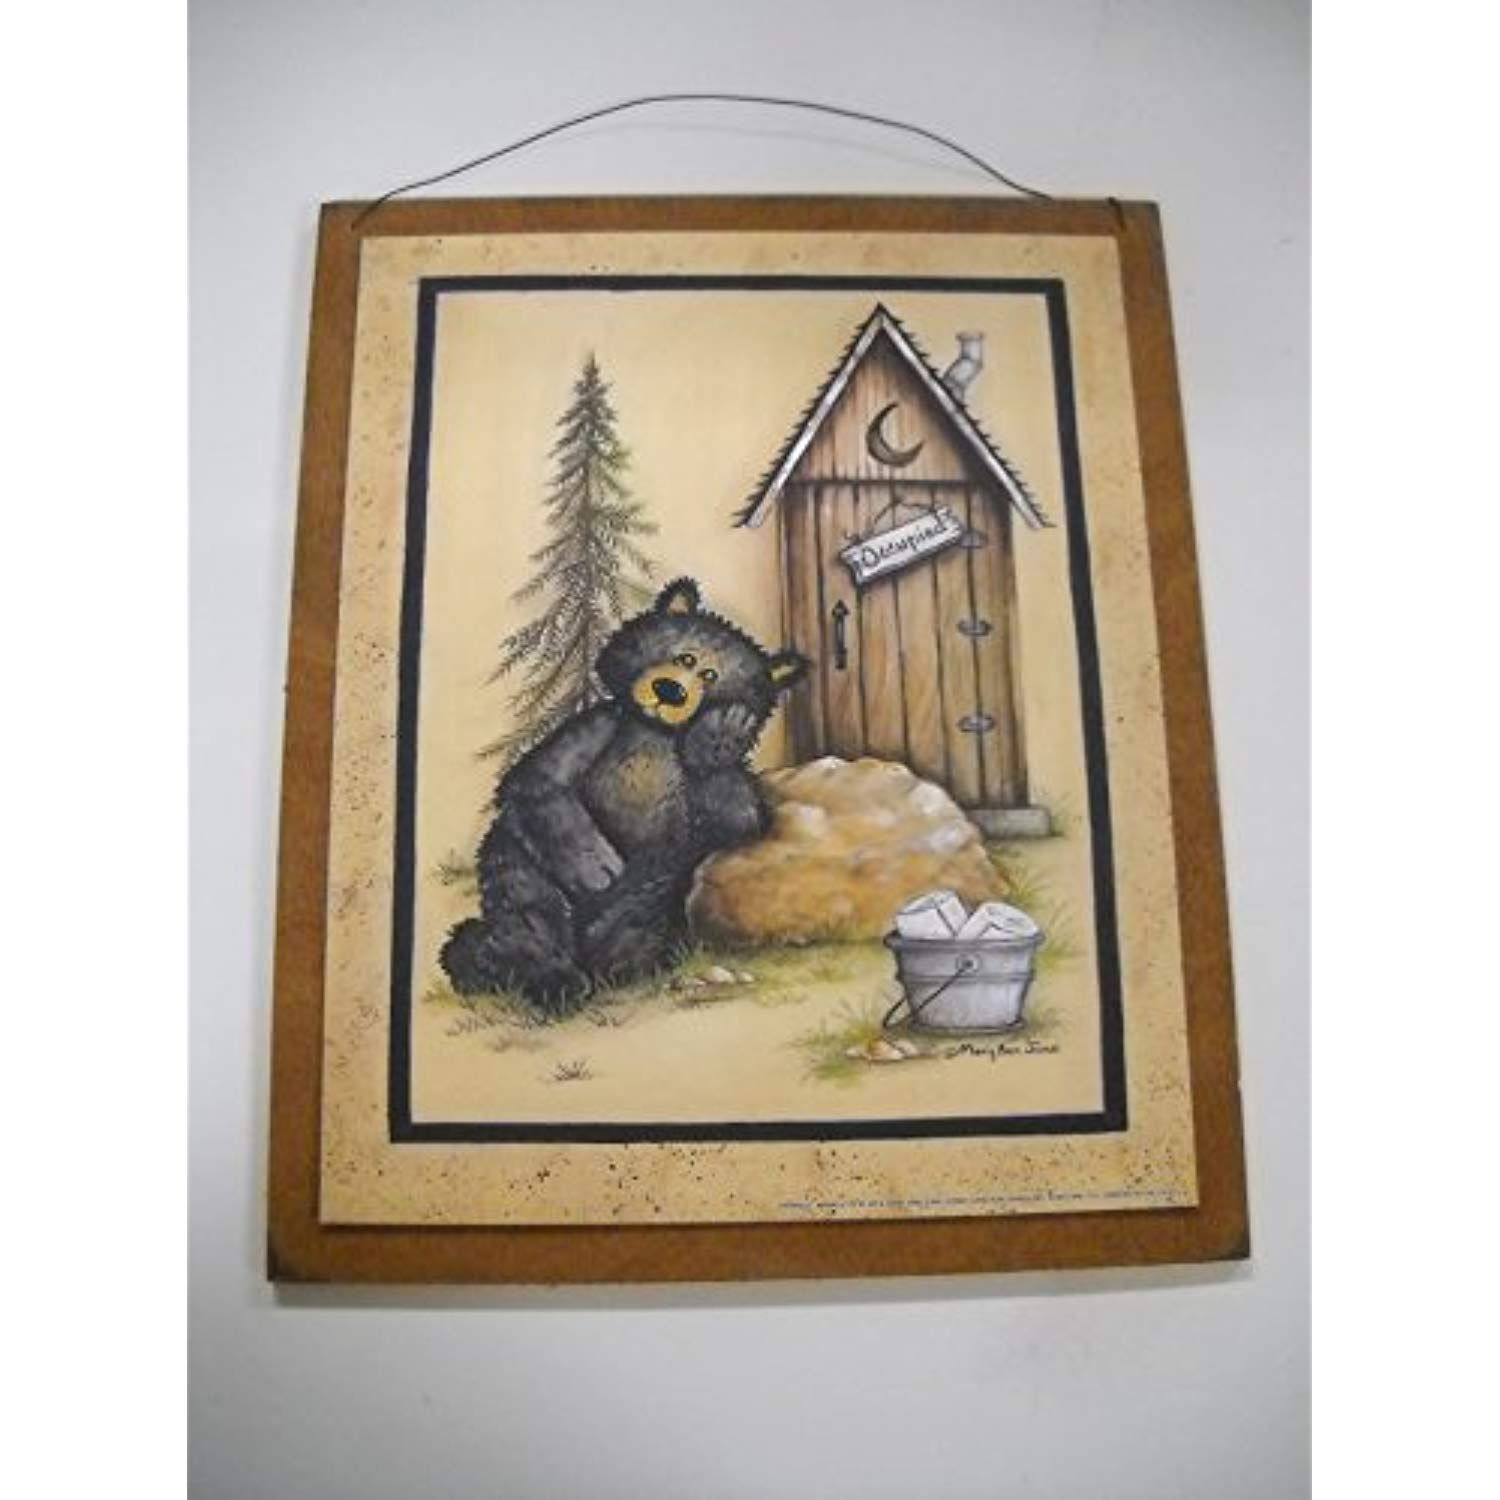 Occupied Outhouse Country Bear Bathroom Sign Lodge Bath Decor Stars Be Sure To Check Out This Awesome Bear Bathroom Decor Outhouse Bathroom Decor Bear Decor Country bear bathroom decor